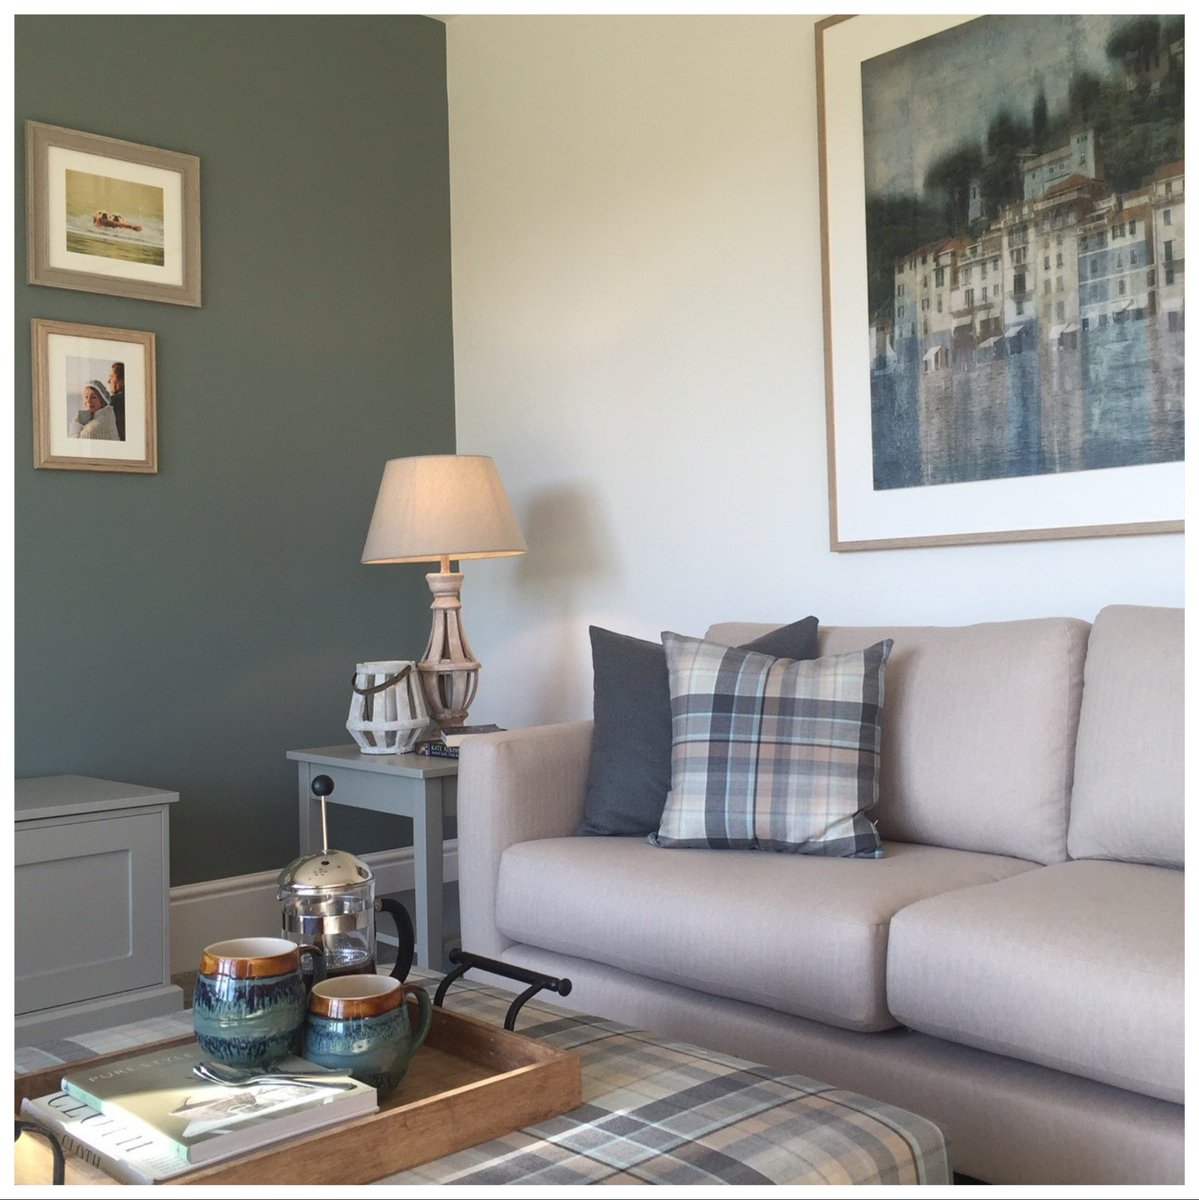 redrow homes on twitter according to dulux the colour. Black Bedroom Furniture Sets. Home Design Ideas